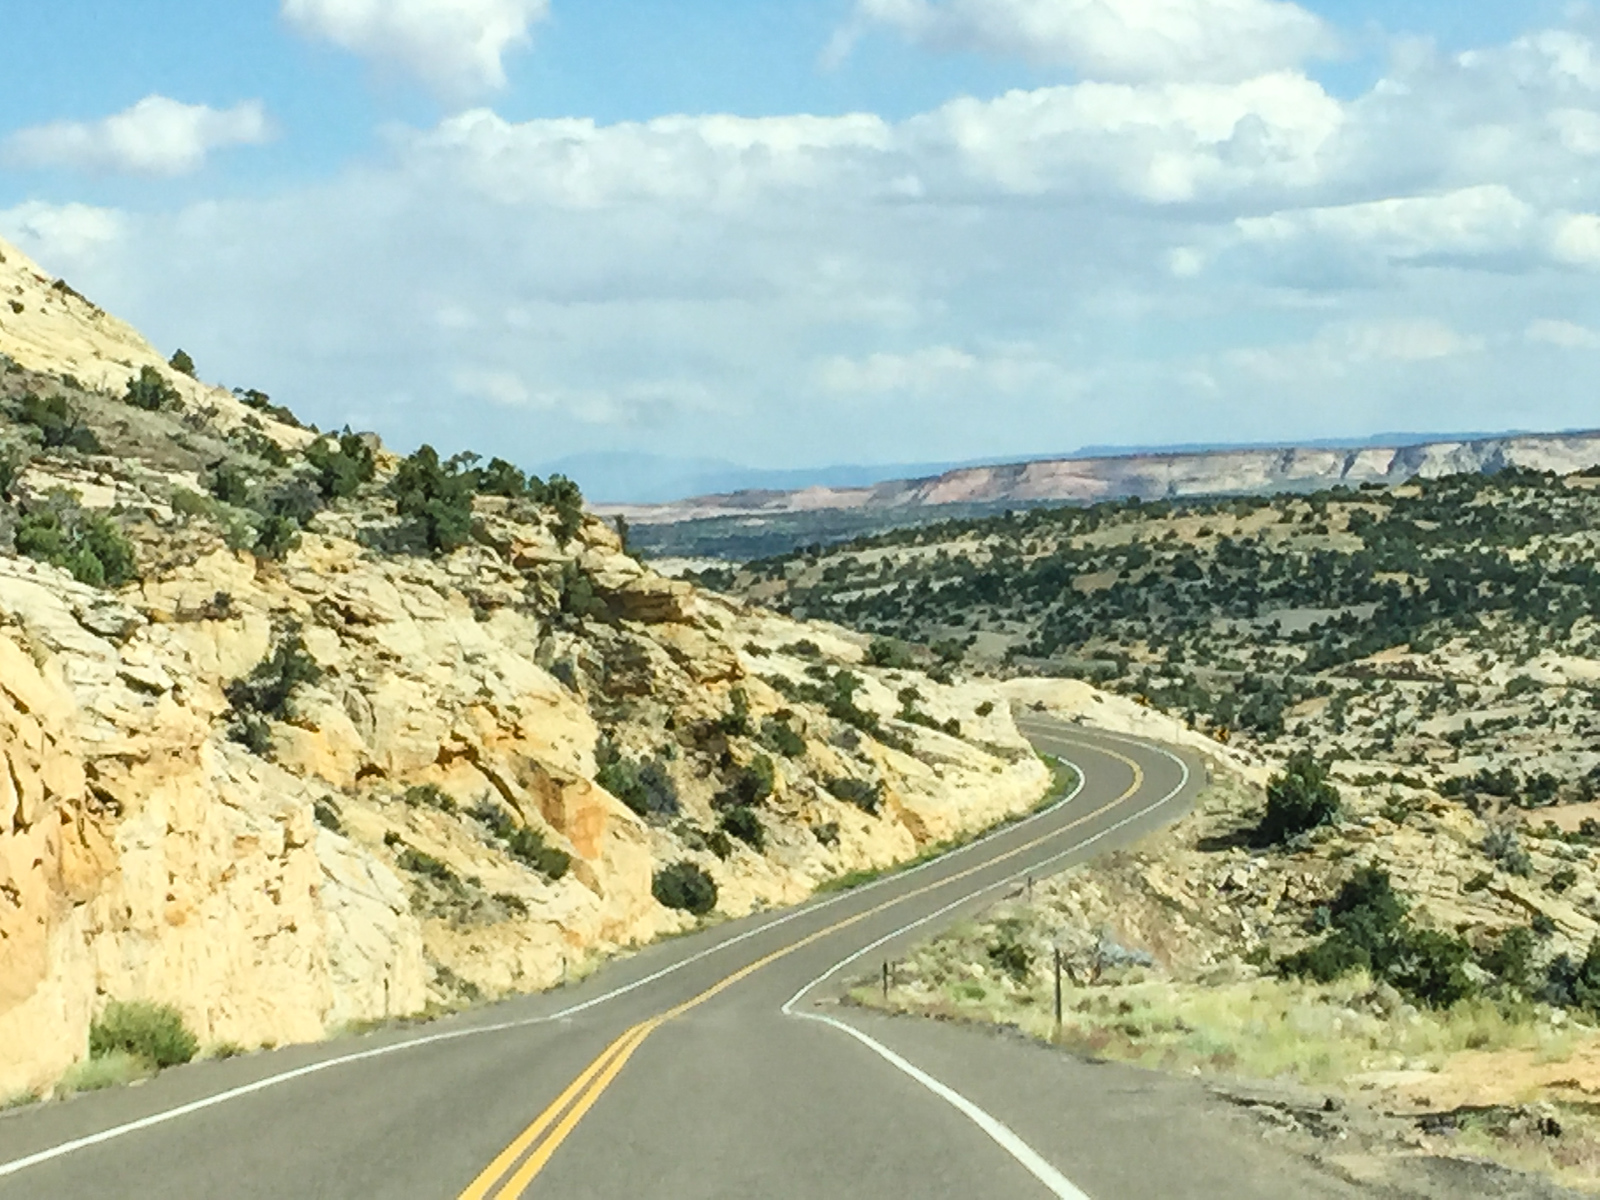 Scenic Byway 12 in southern Utah leads to some of the most outstanding scenery in Utah.